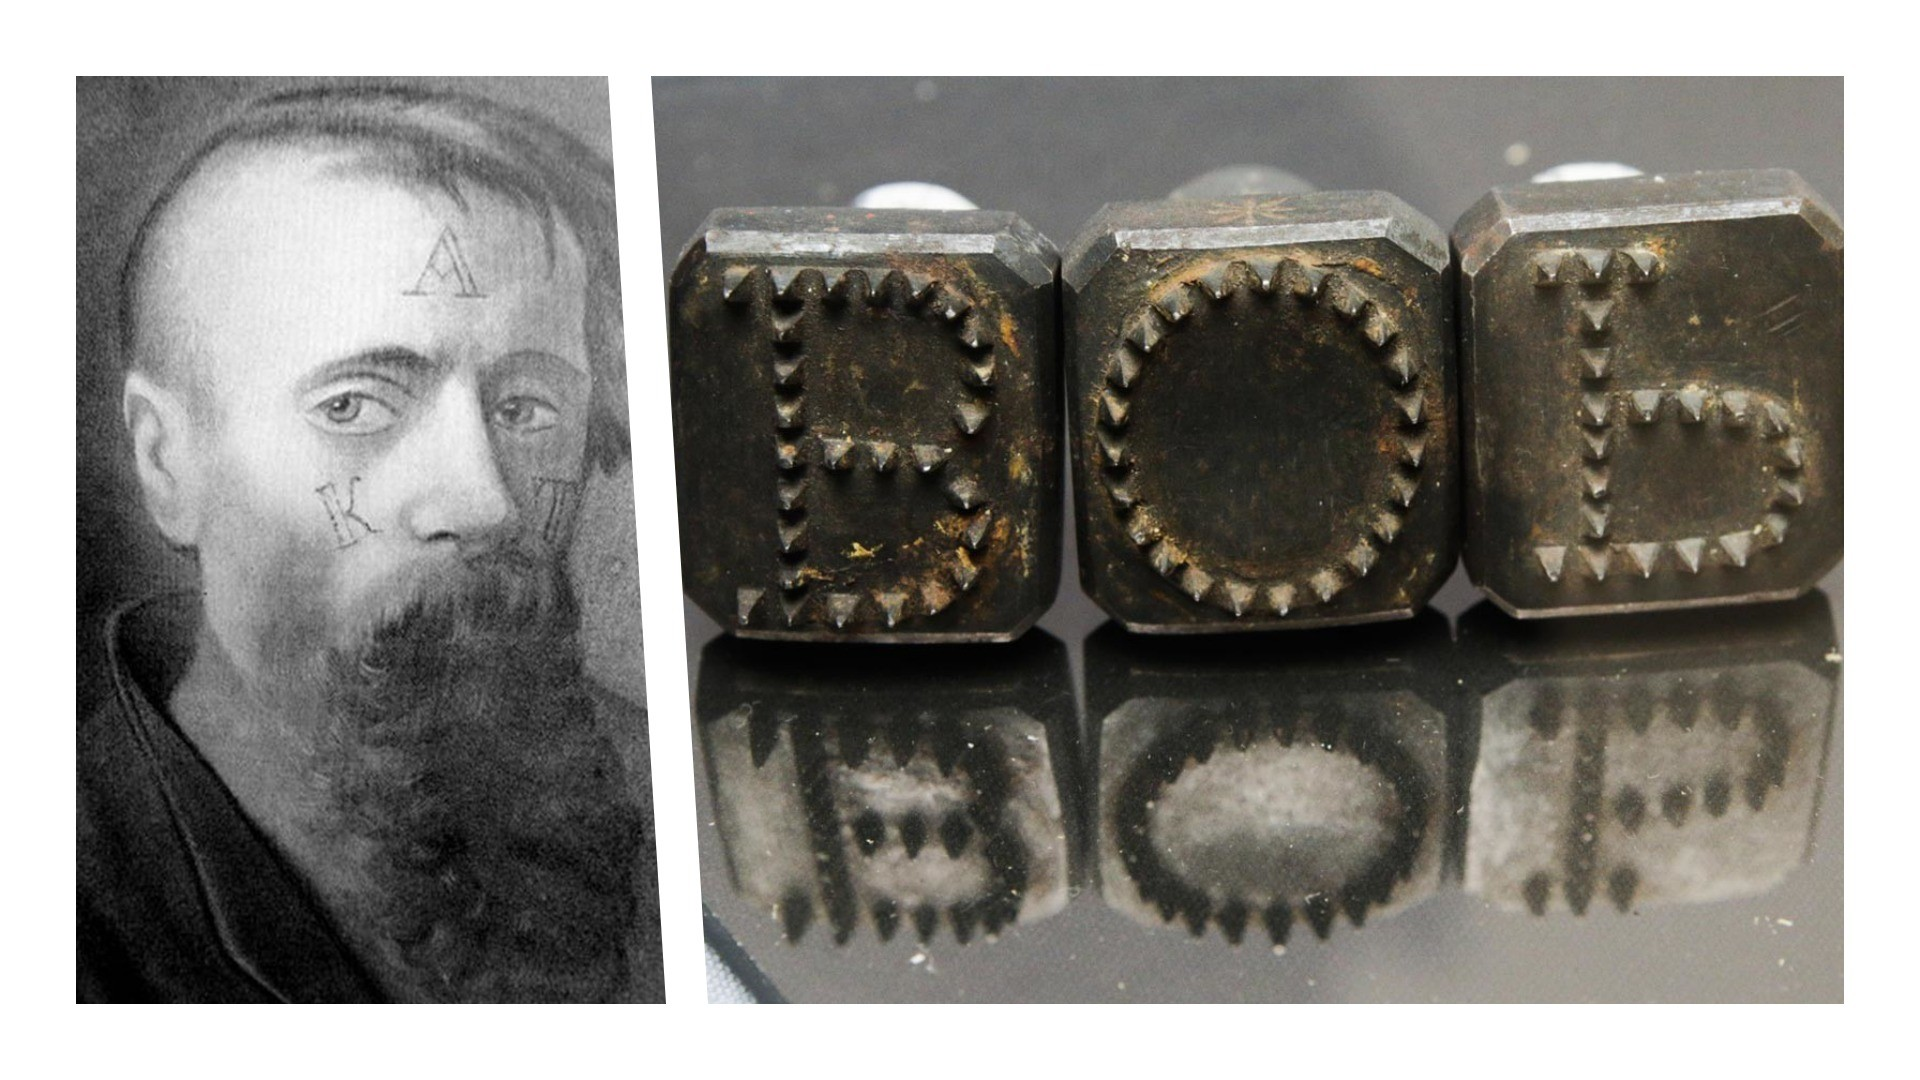 The way branding was performed on a convict's face / The tool used for human branding, early 19th century.